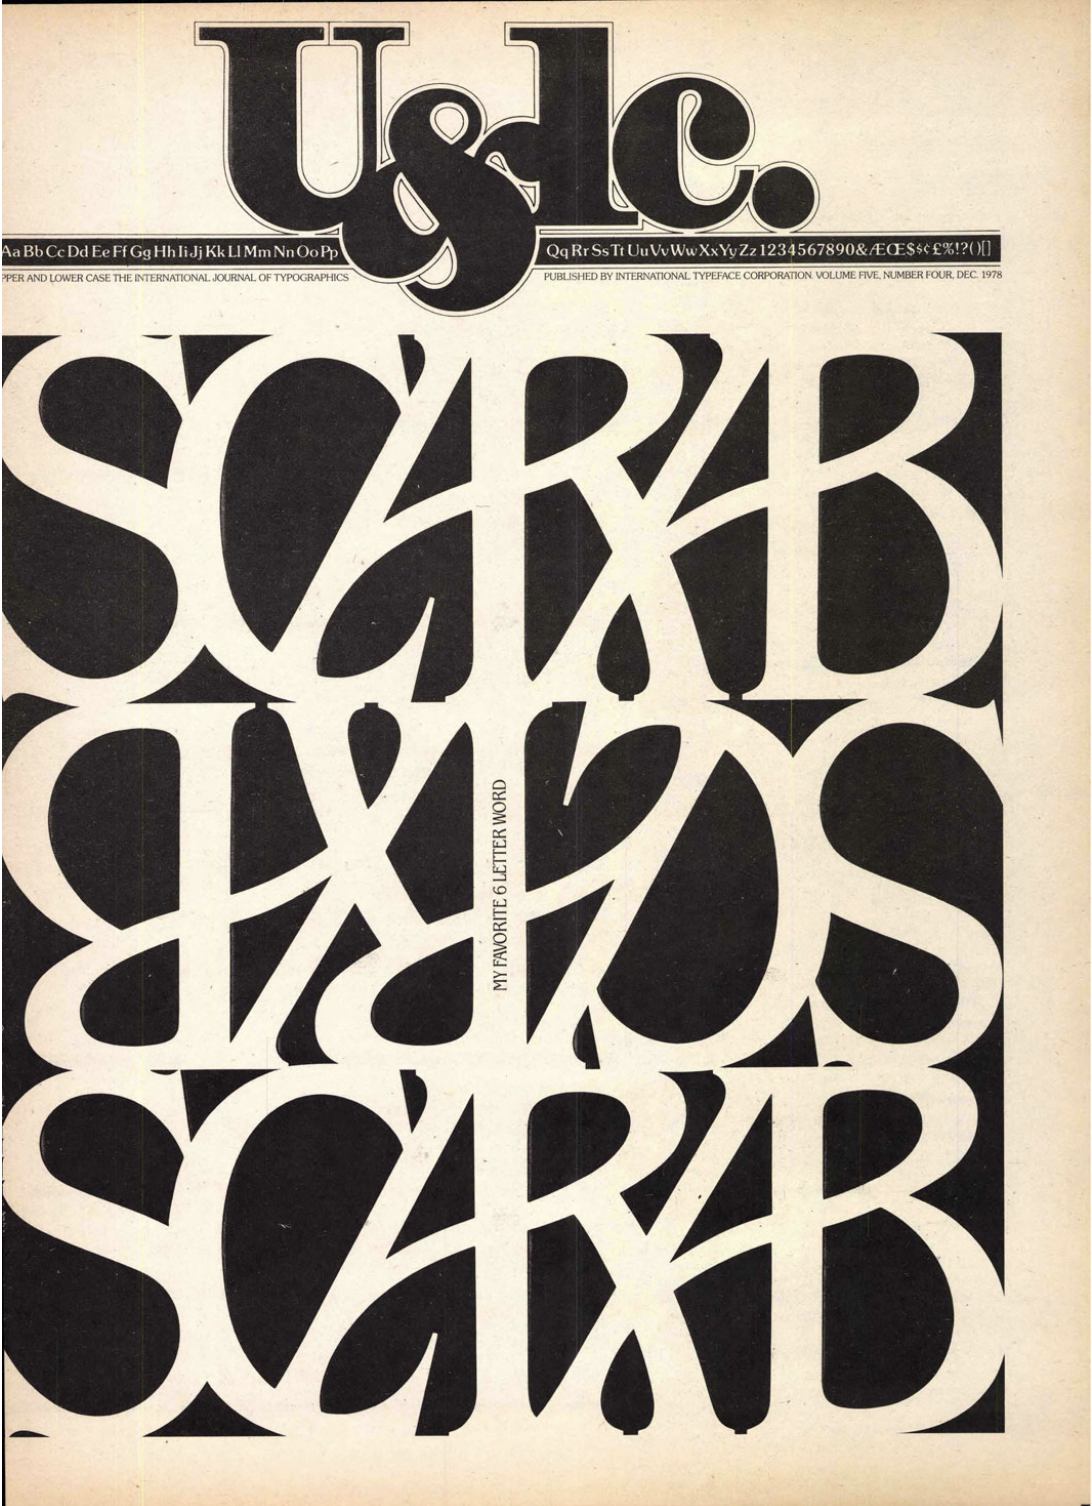 Seventies are hot! Sexy spacing & more typography from an